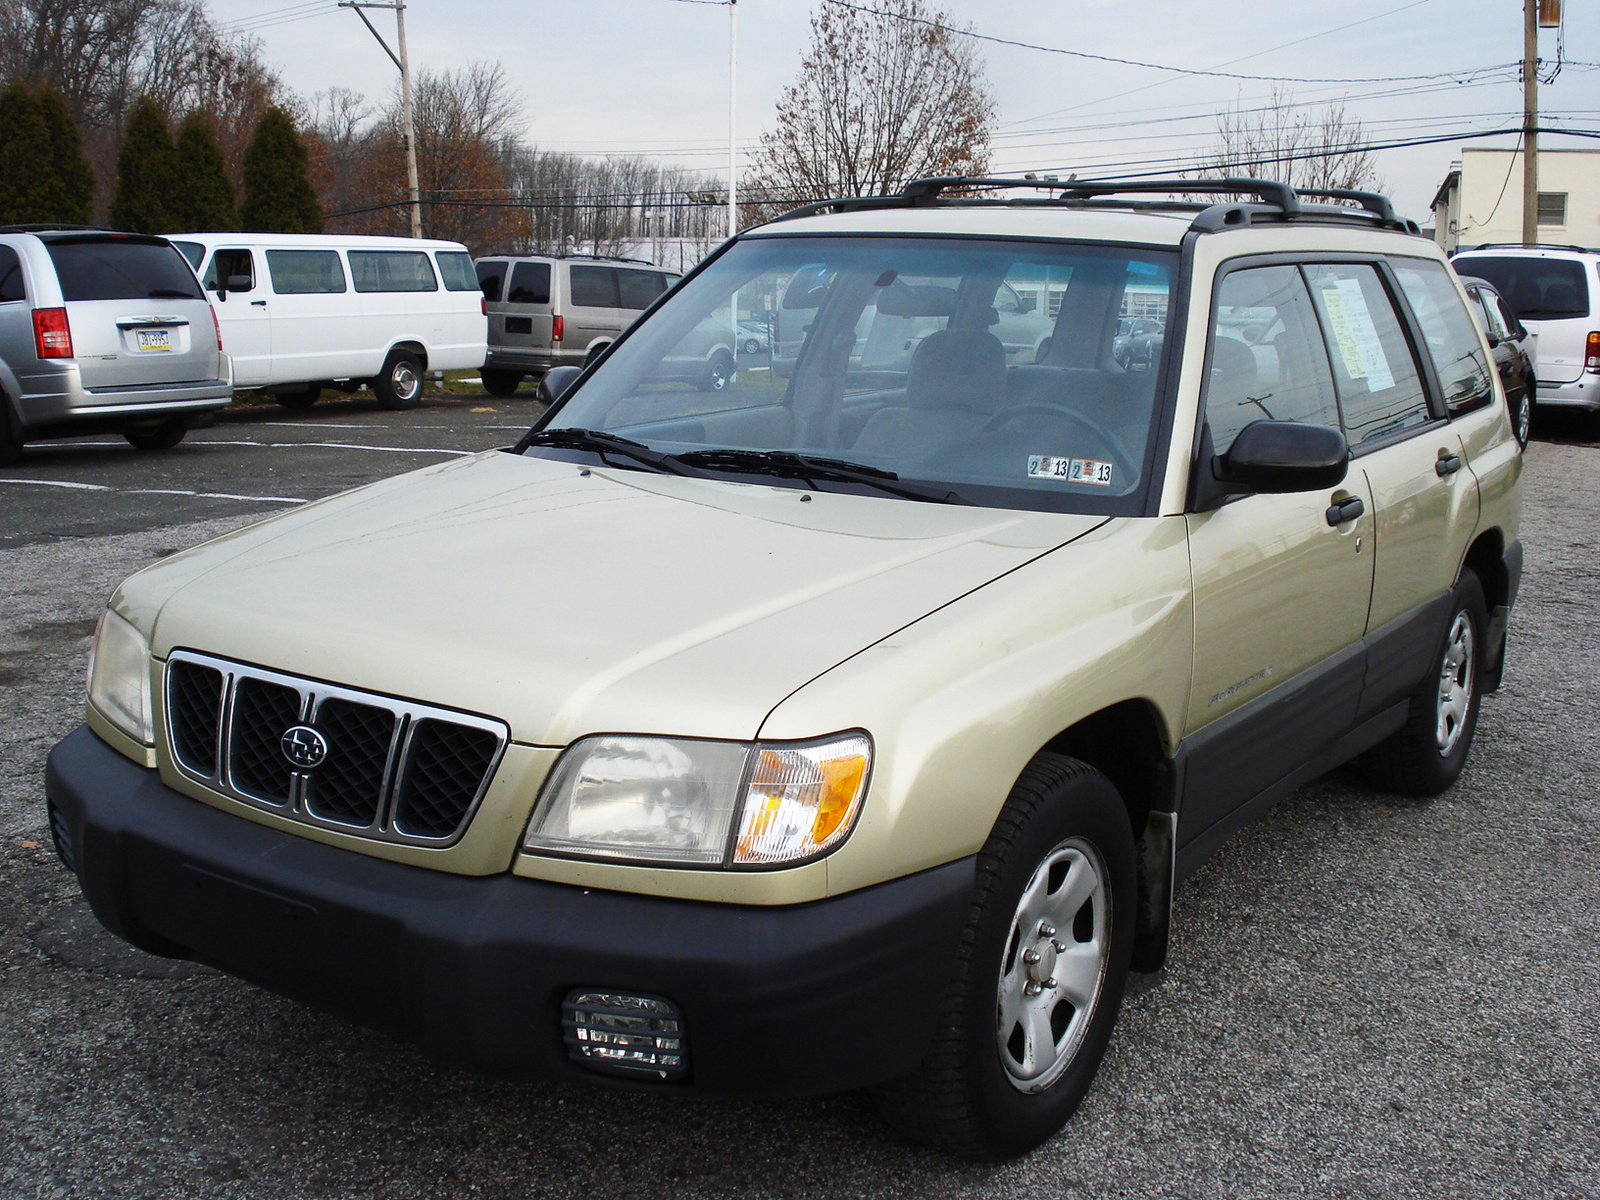 Used 2003 Subaru Forester Pricing Edmunds Autos Post